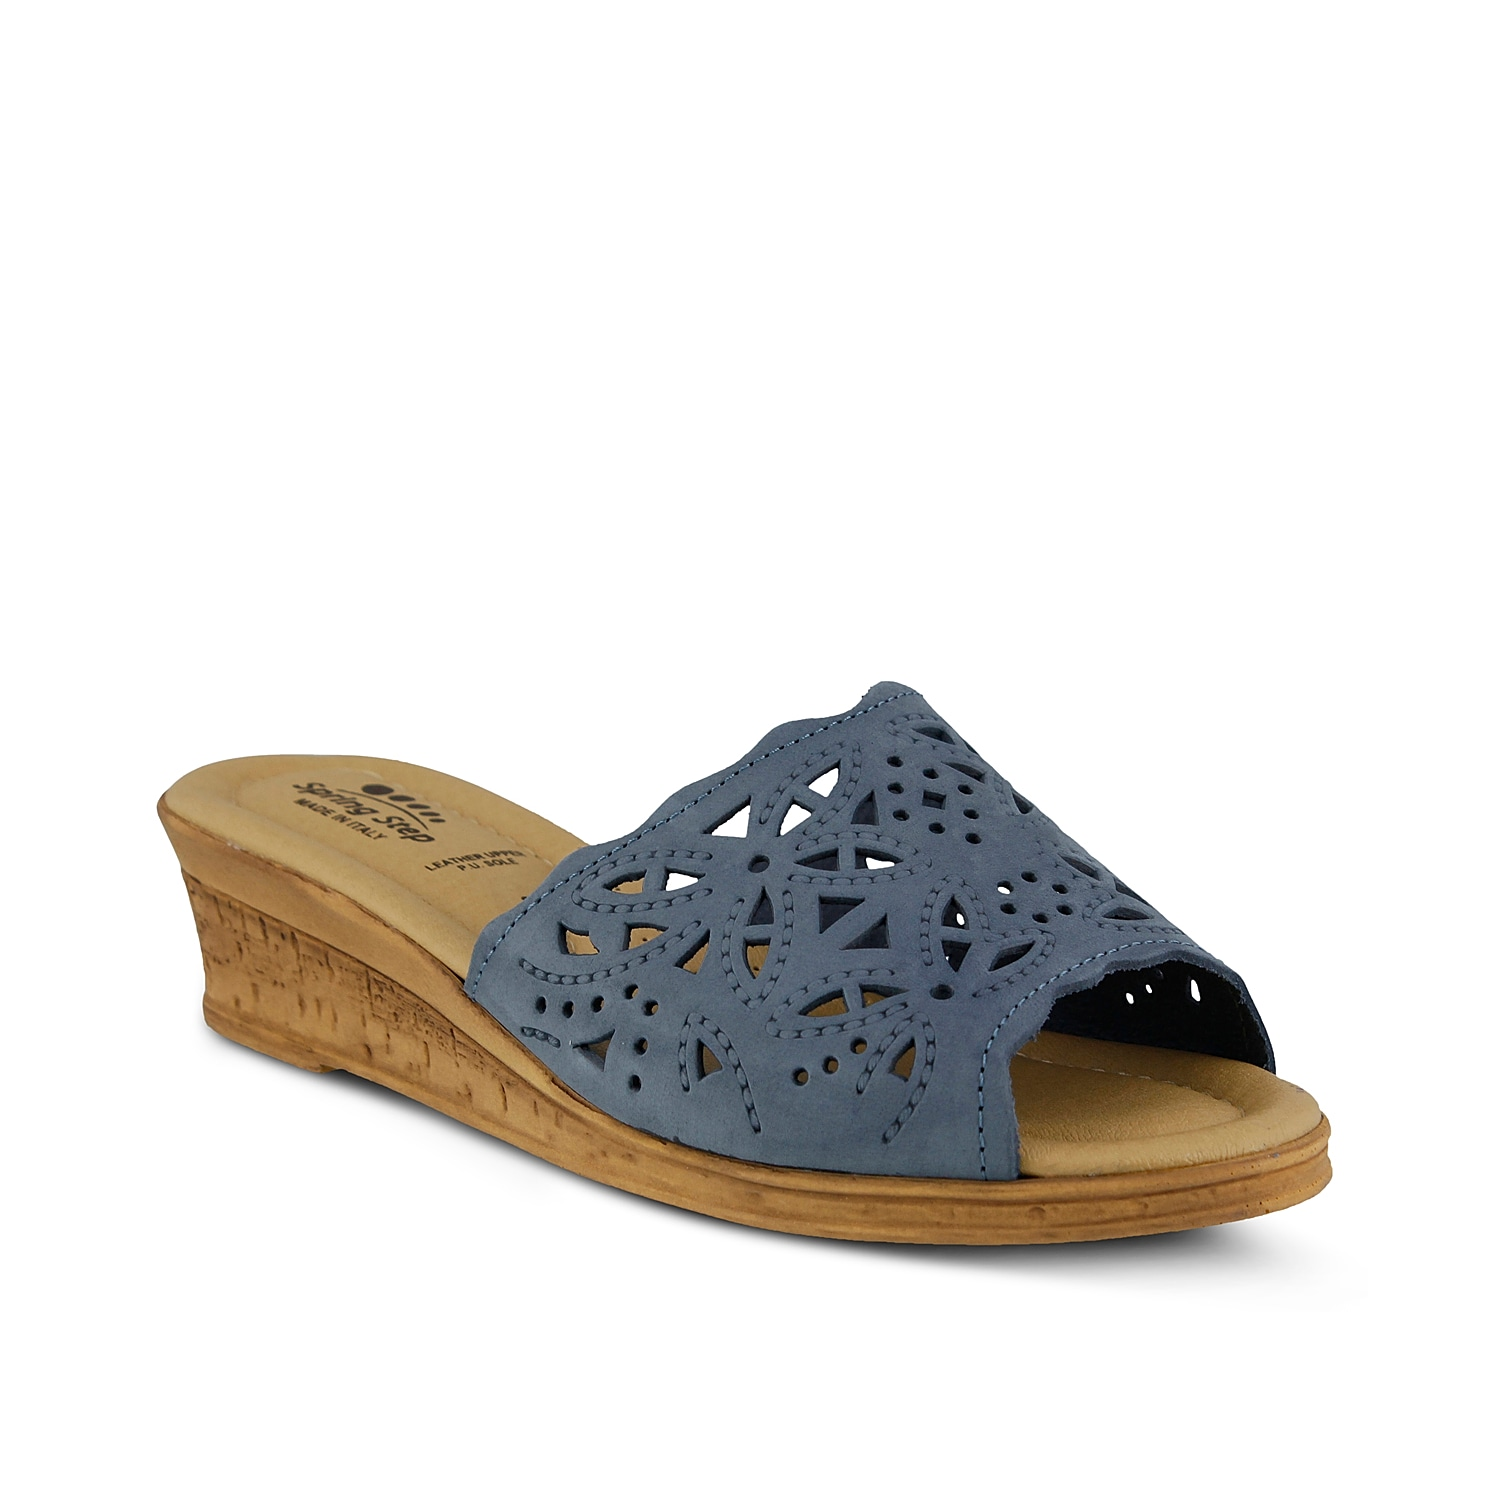 Sweet and summery, the Spring Step Estella wedges are the perfect slide sandals to pair with all of your casual warm weather looks. With feminine cutouts and an easy slip on design, these comfortable leather sandals are a must-have!